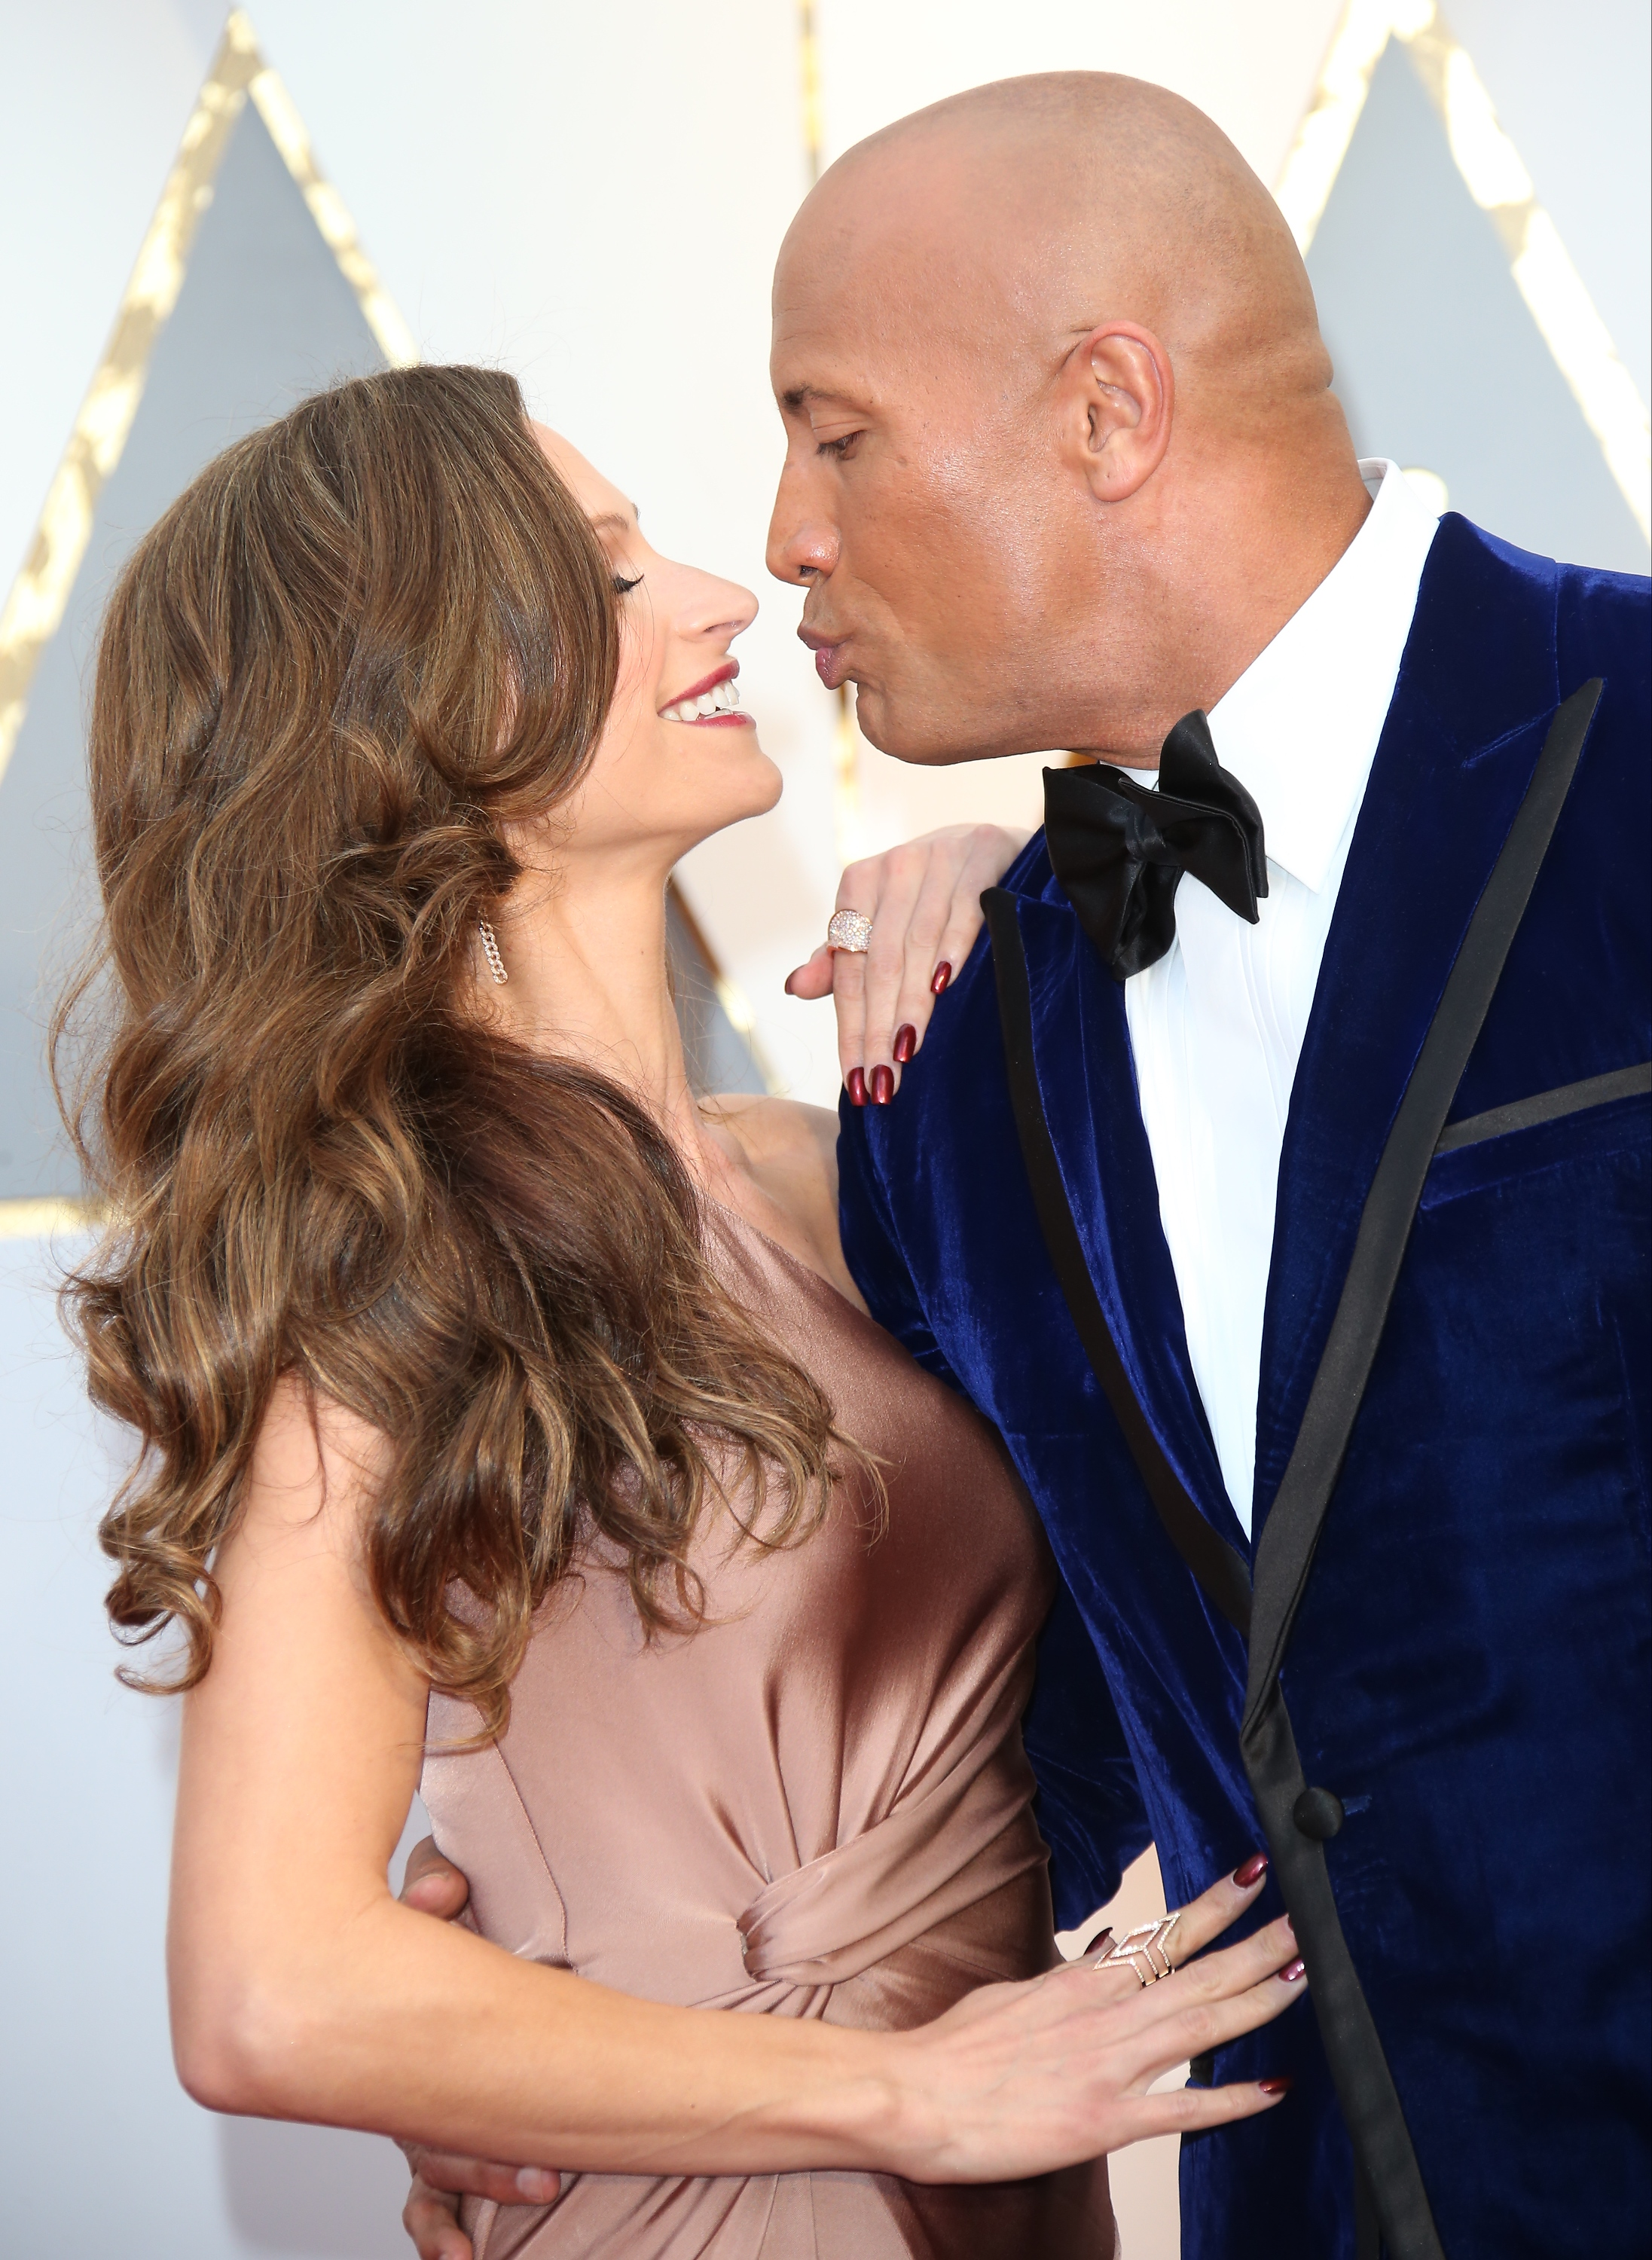 Dwayne Johnson Recalls the Most Romantic Thing He's Ever Done for Wife Lauren Hashian